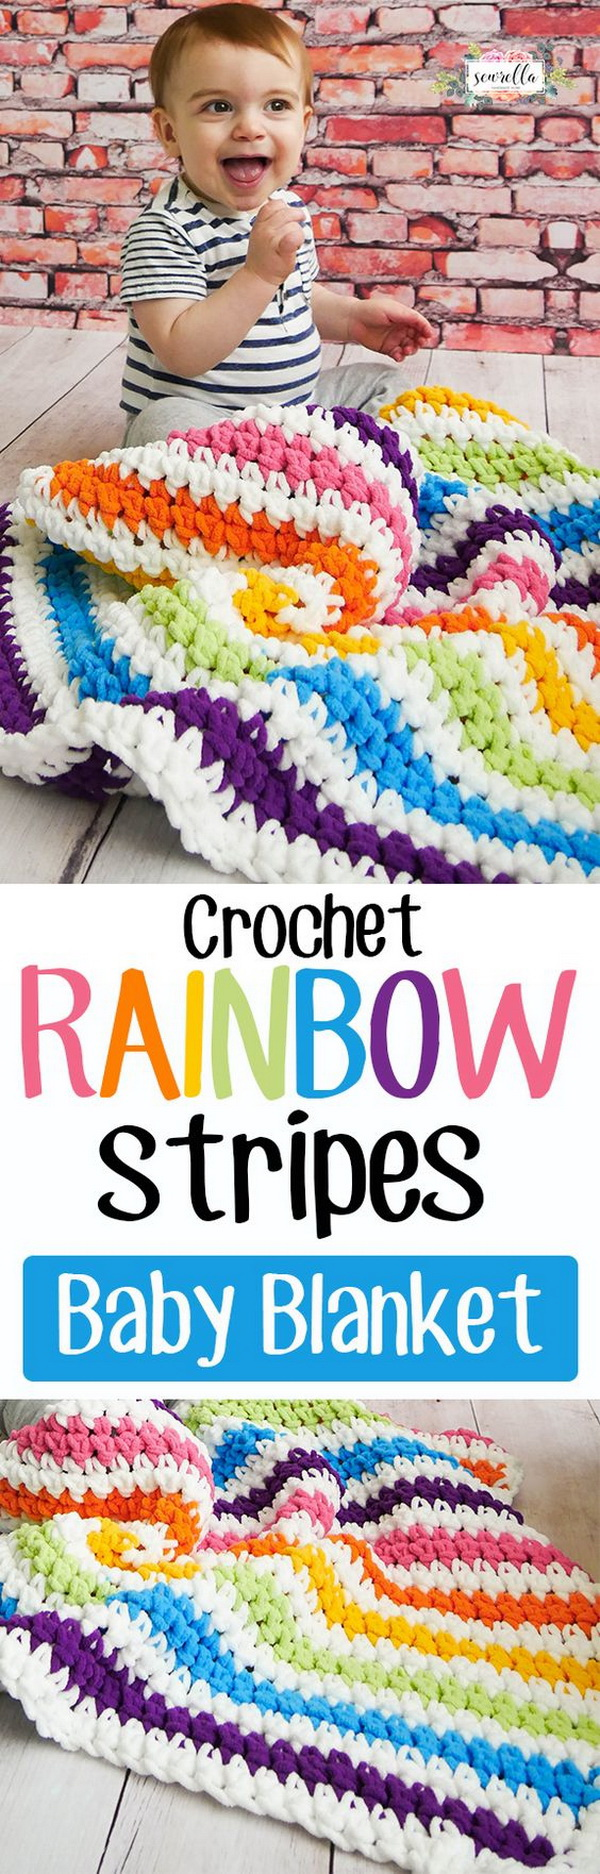 Quick And Easy Crochet Blanket Patterns For Beginners: Crochet Rainbow Stripes Baby Blanket Free Pattern.